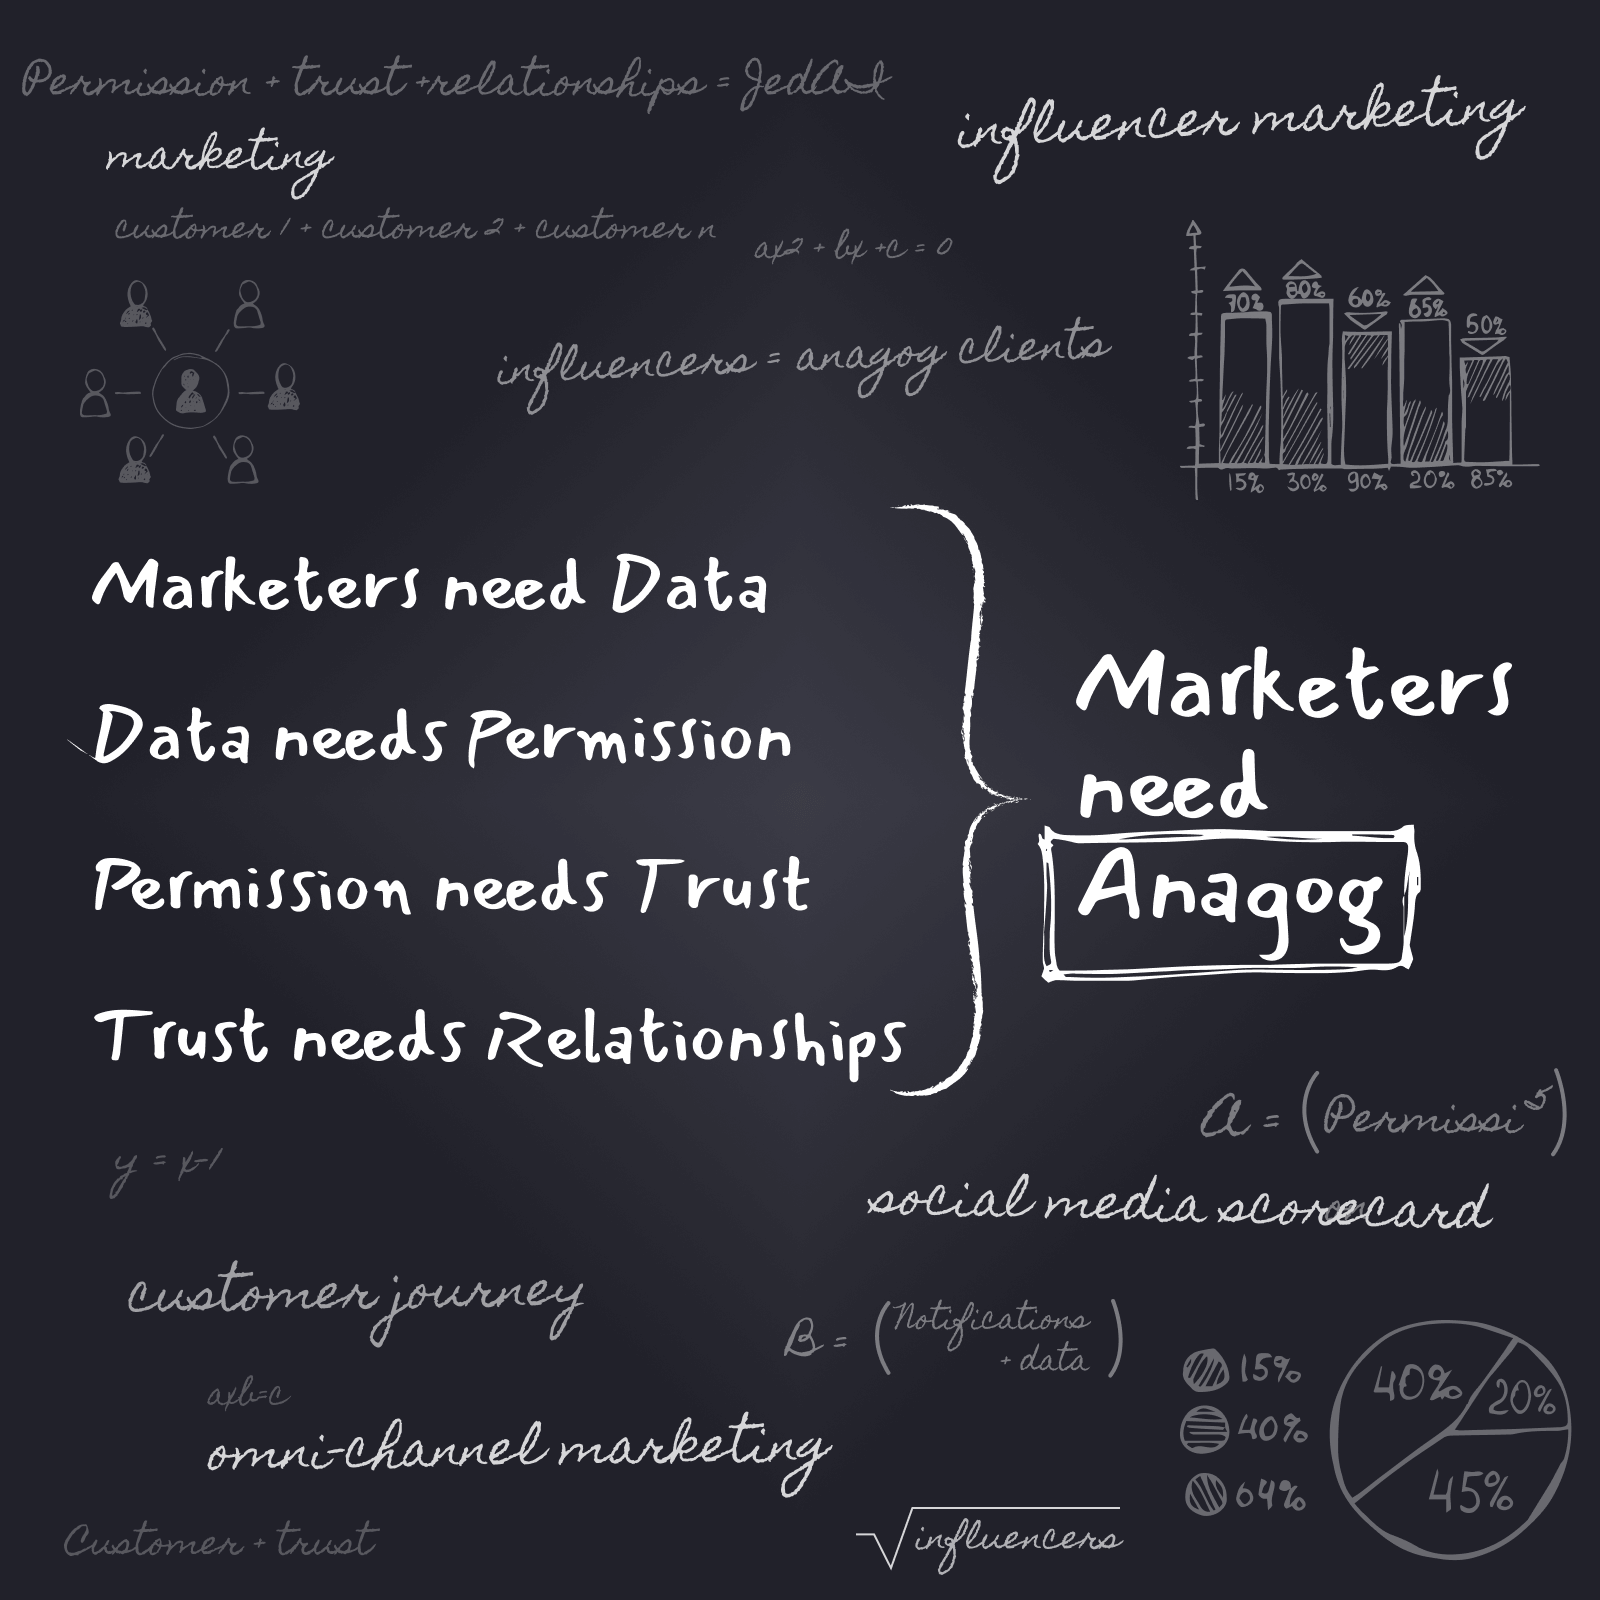 Marketers Need Anagog_Blog Post